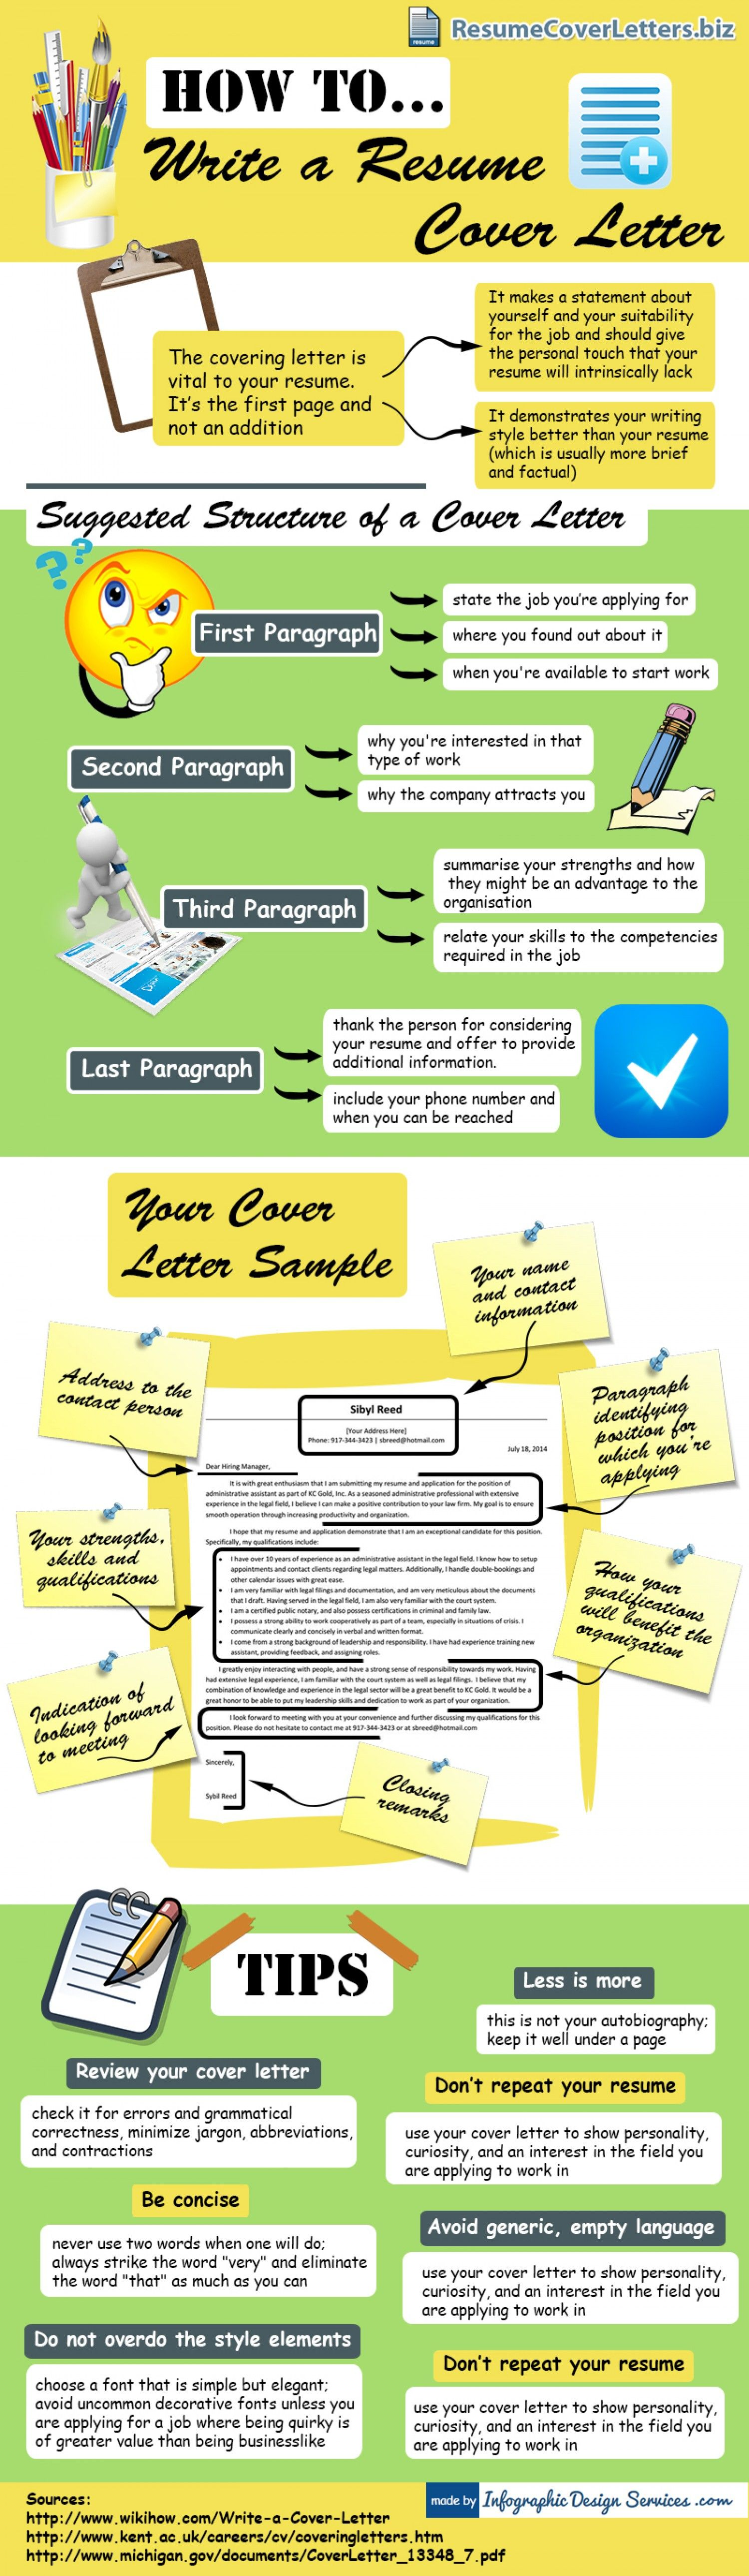 resume cover letter writing tips infographic - What Do I Write On A Cover Letter